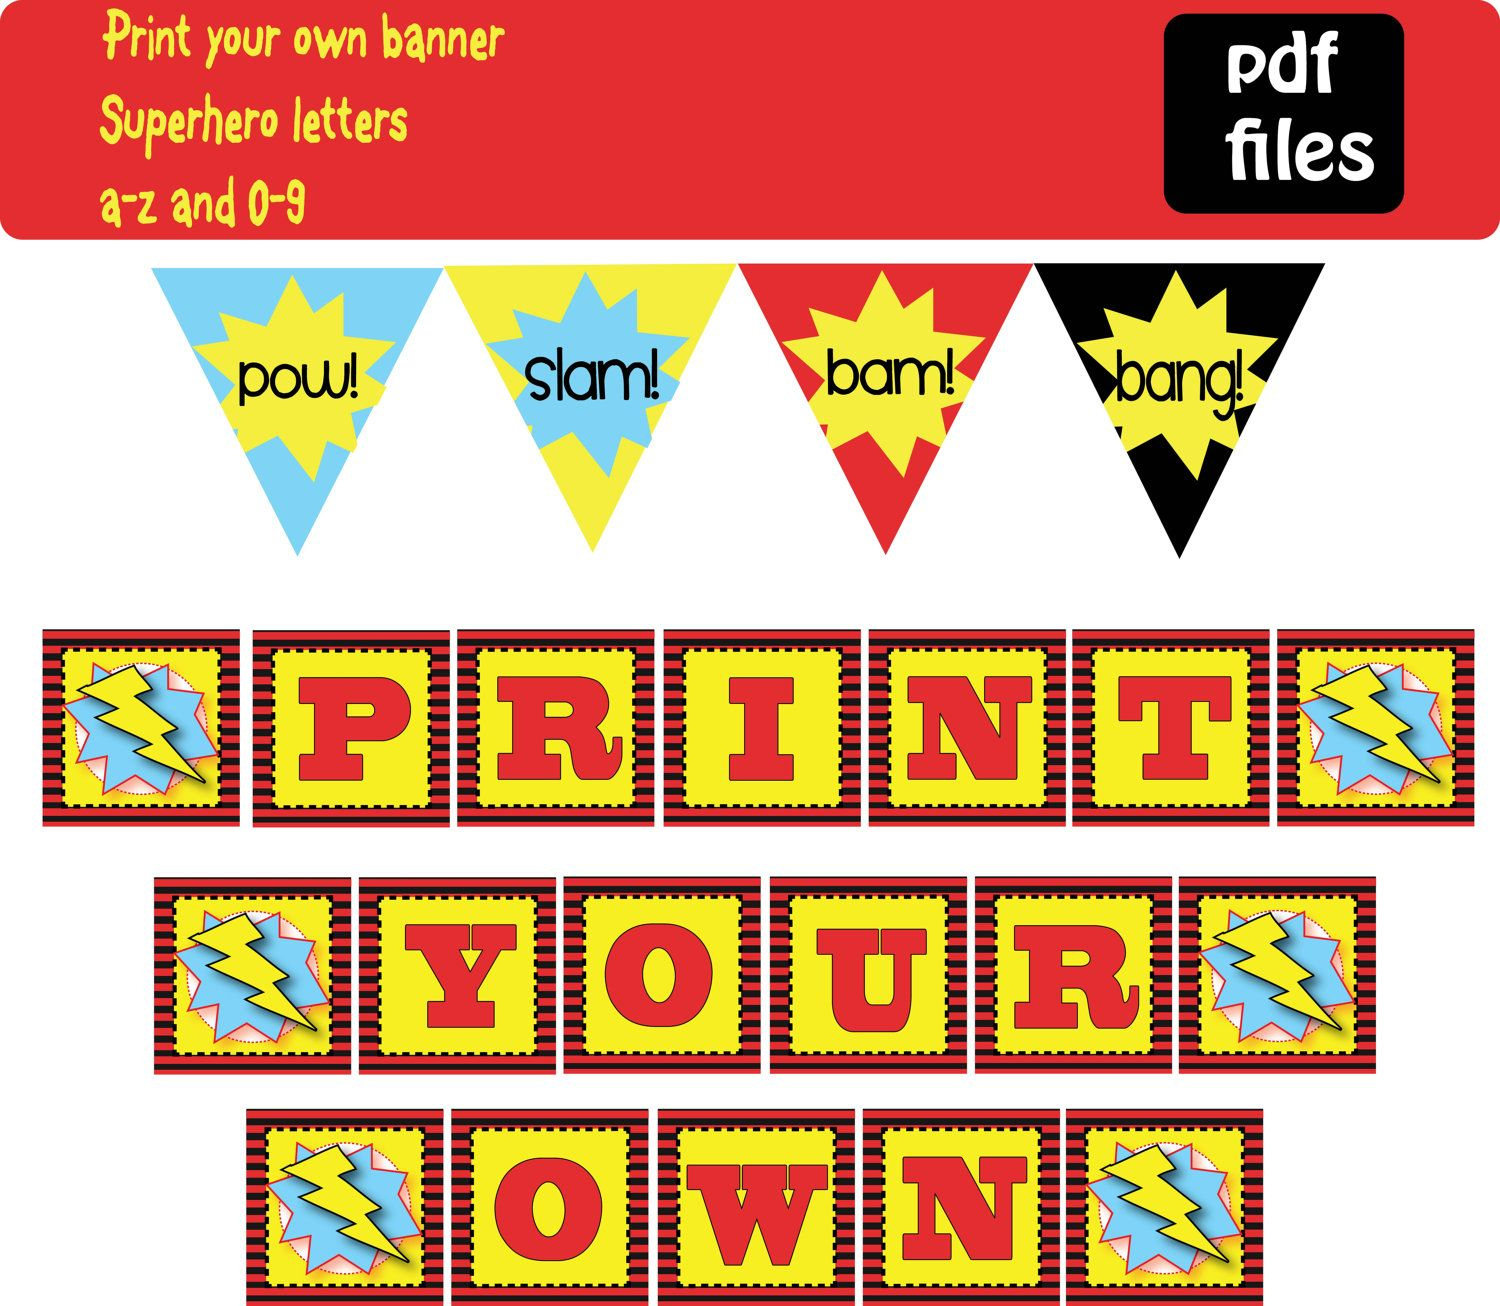 Free Printable Superhero Banner | Super Hero Theme Ideas And - Free Printable Superhero Pictures